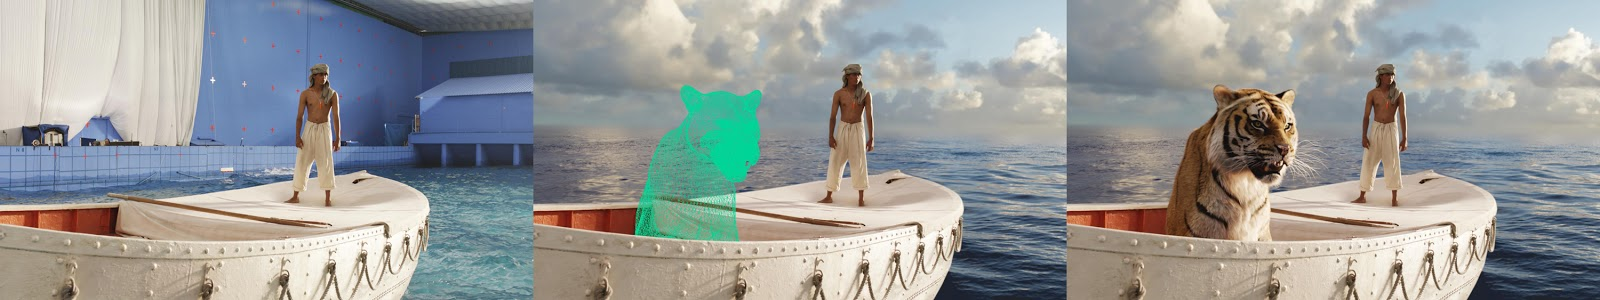 life of pi will to survive Life of pi: external and internal conflicts to survival - продолжительность: 16:23 justine gieni 952 просмотра life of pi beliefs and the religion of hinduism, christianity, and islam - продолжительность: 2:33 xander montes 31 888 просмотров.